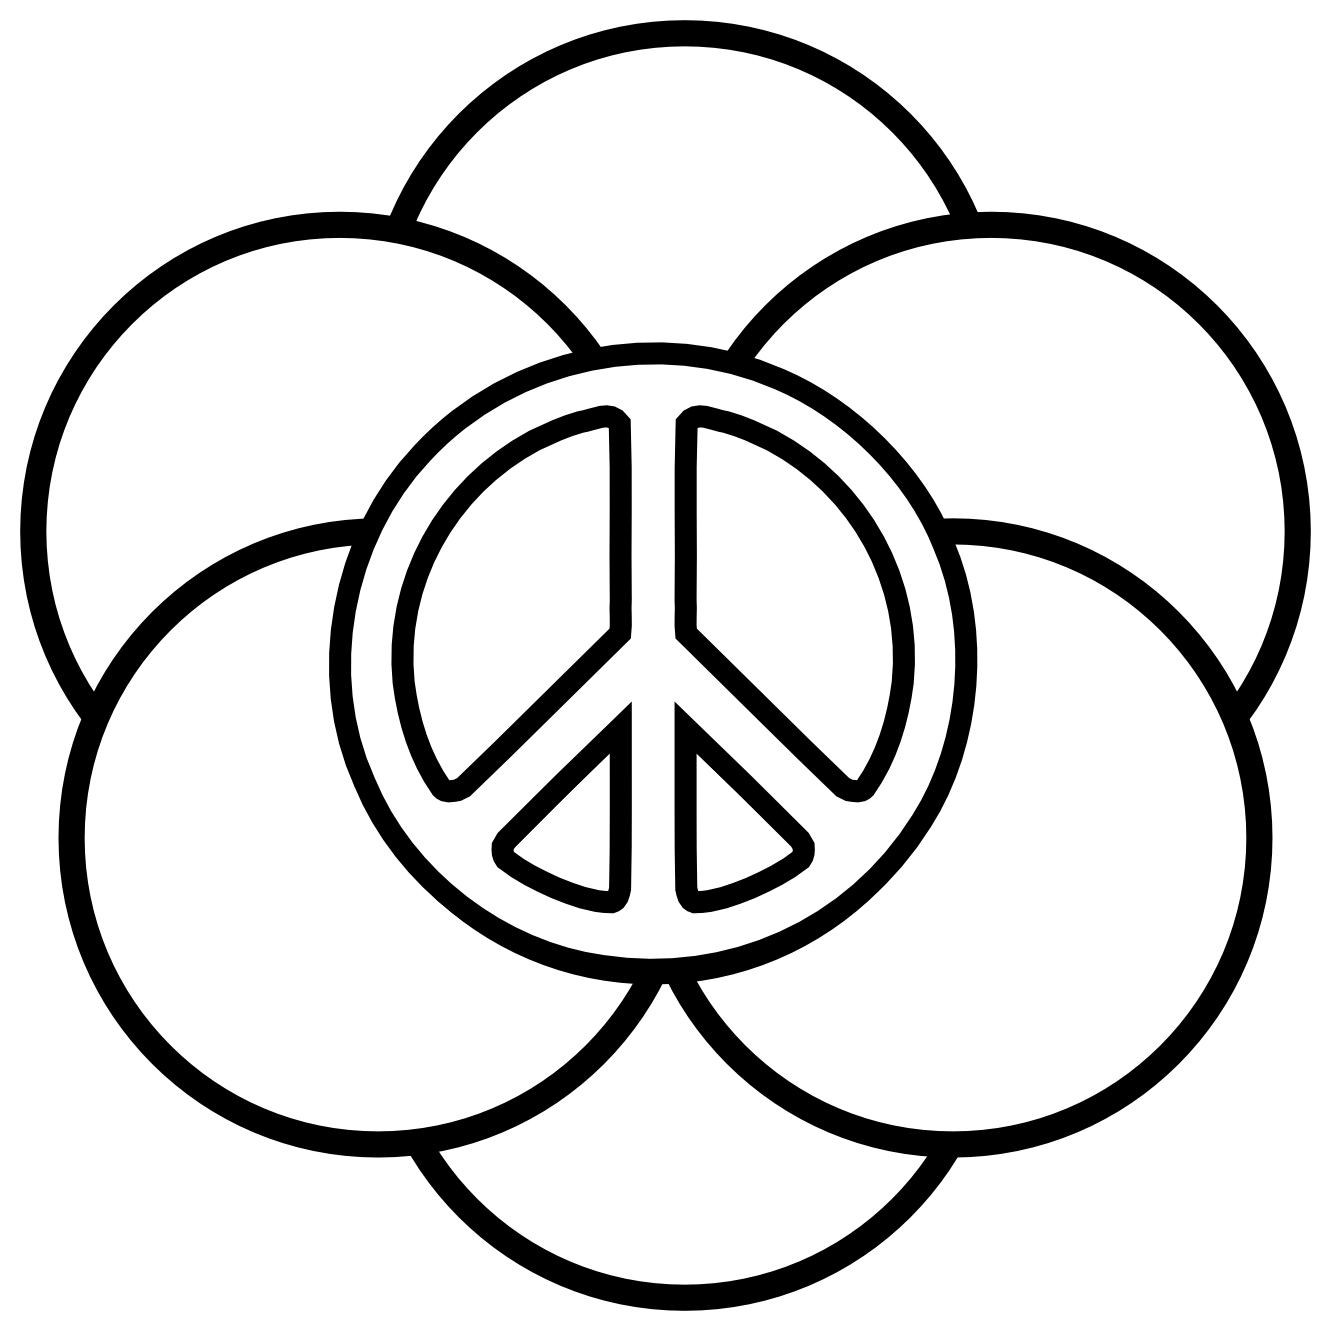 free printable peace sign coloring pages free printable peace sign coloring pages cool2bkids coloring free sign pages peace printable